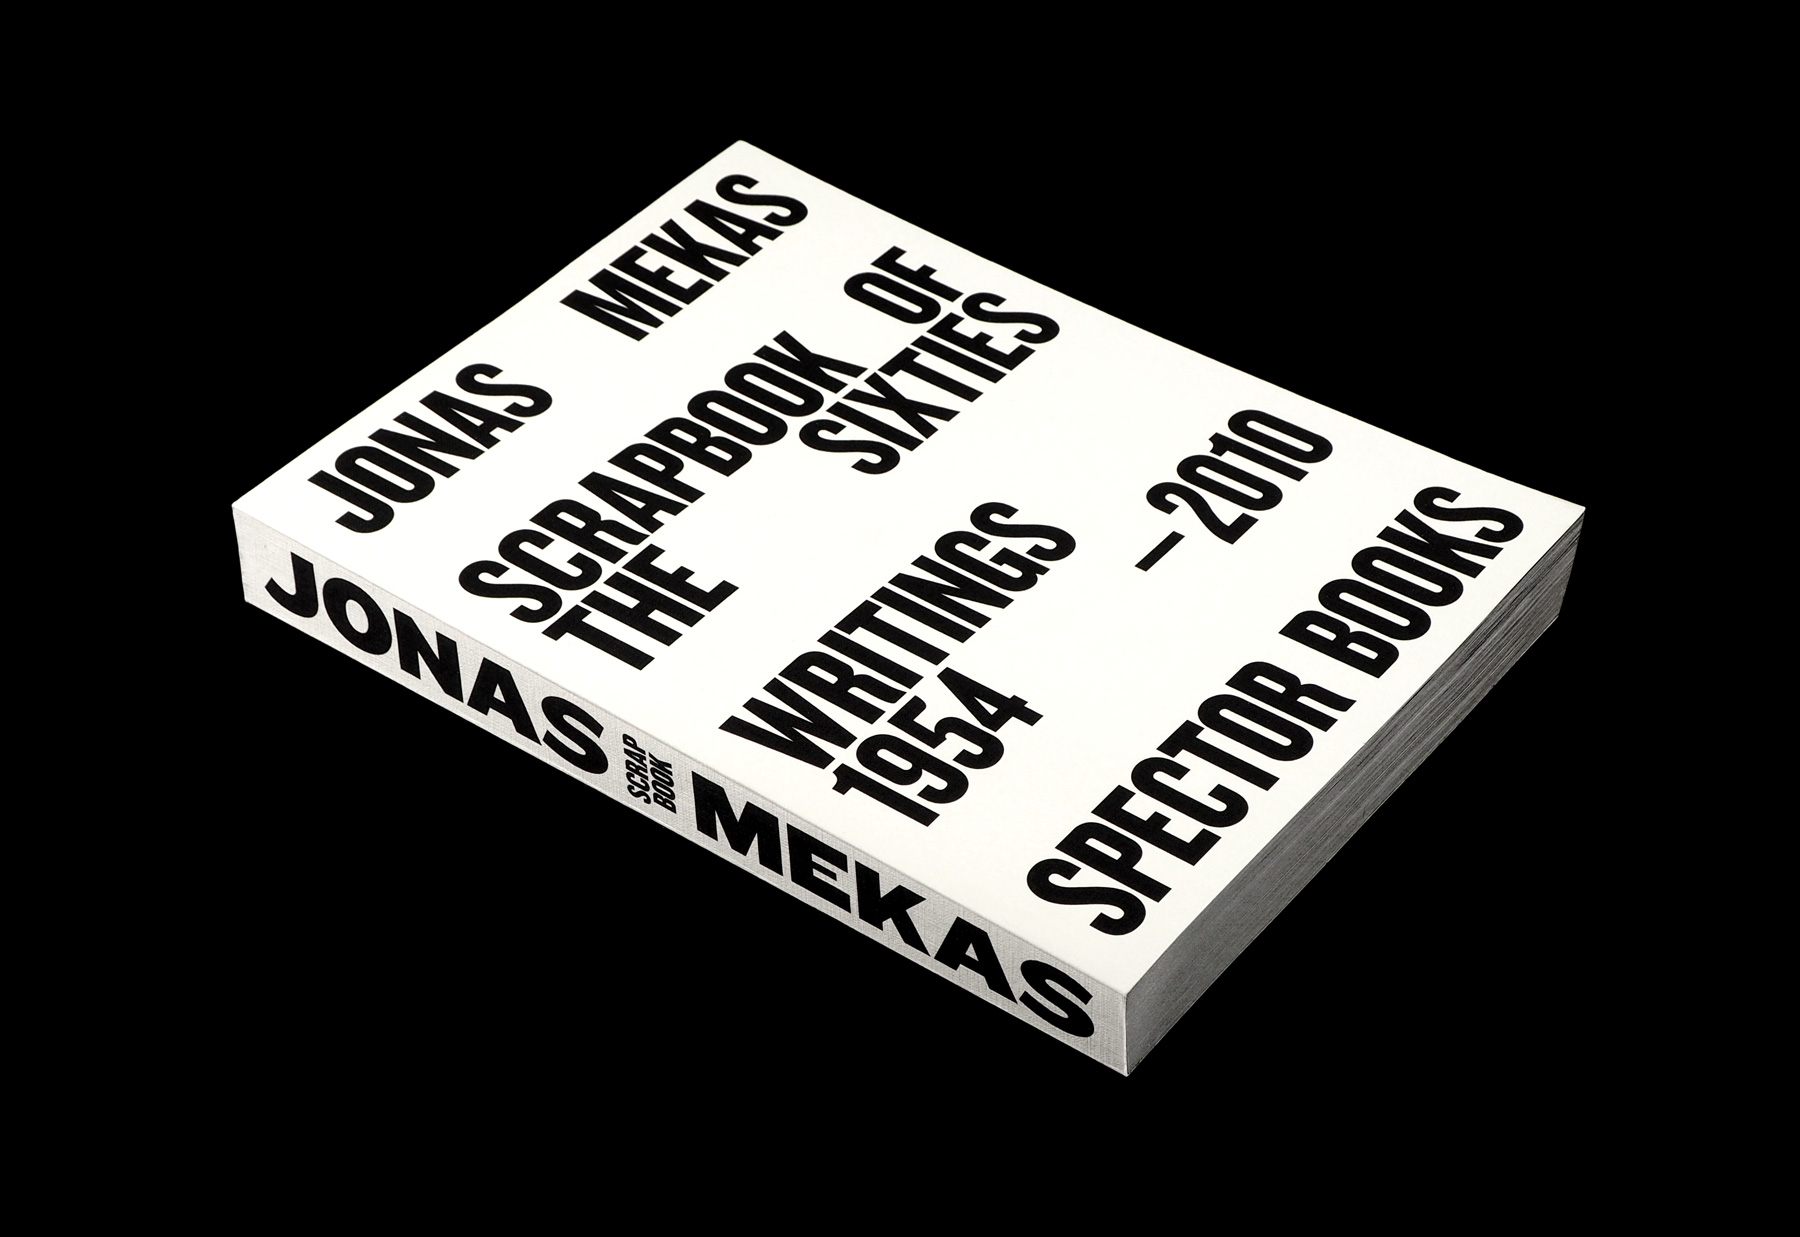 Fabian Bremer / Pascal Storz: Jonas Mekas, Scrapbook of the Sixties